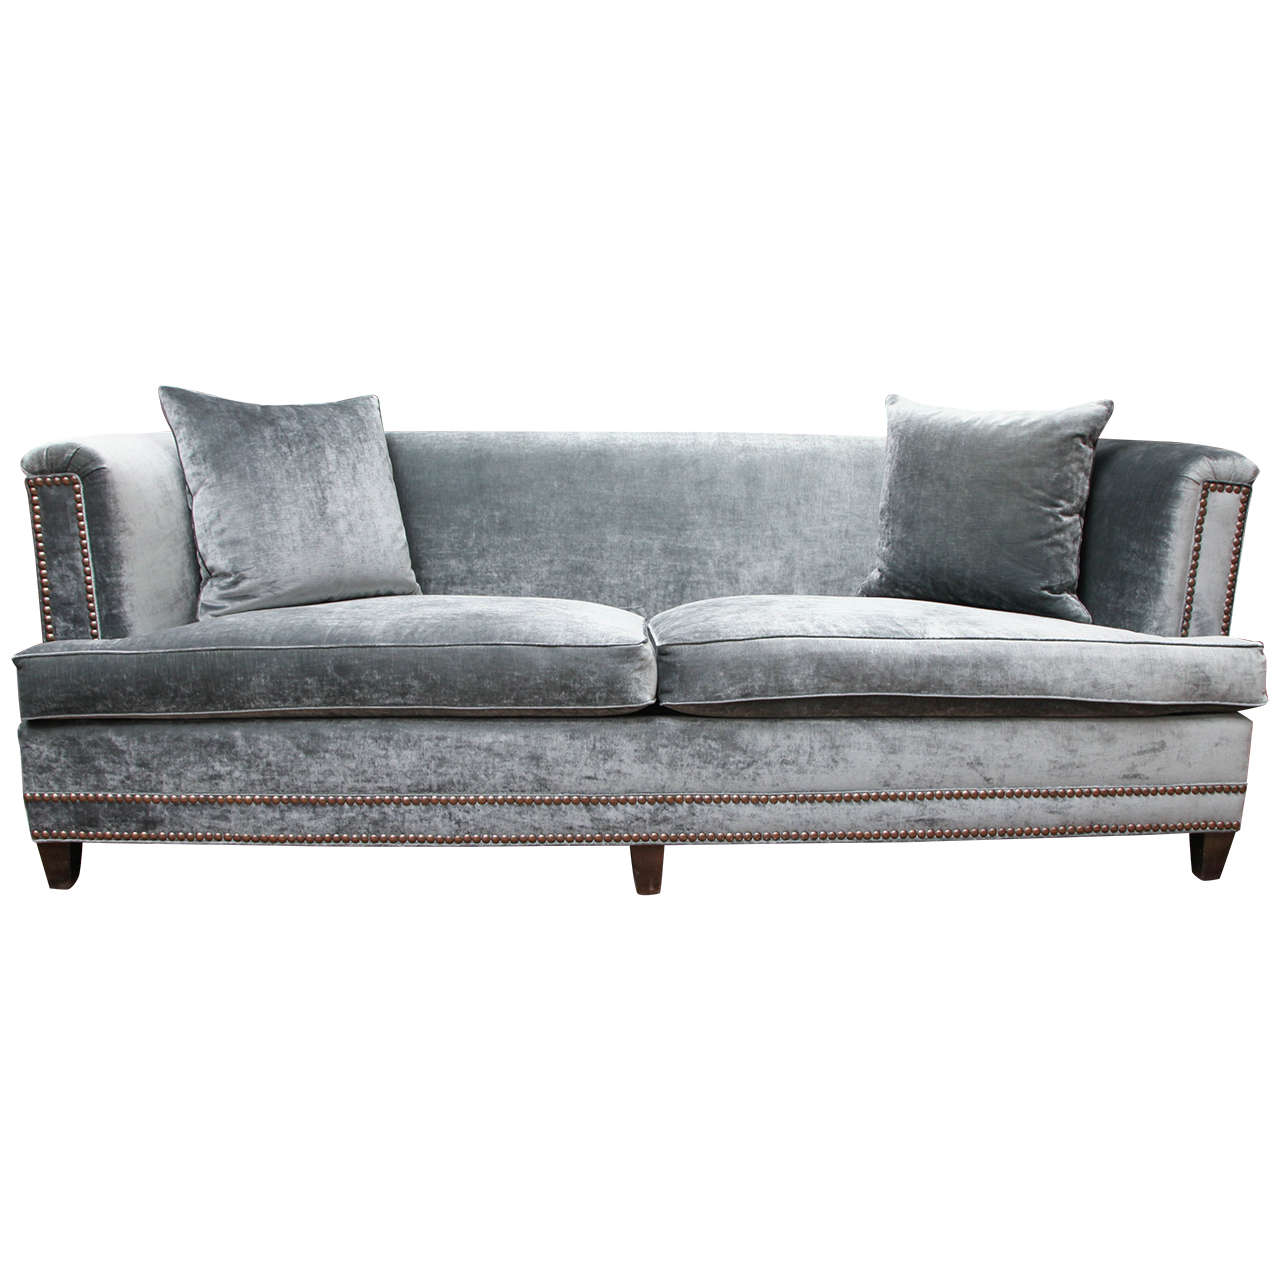 Velvet sofa at 1stdibs Couches and loveseats